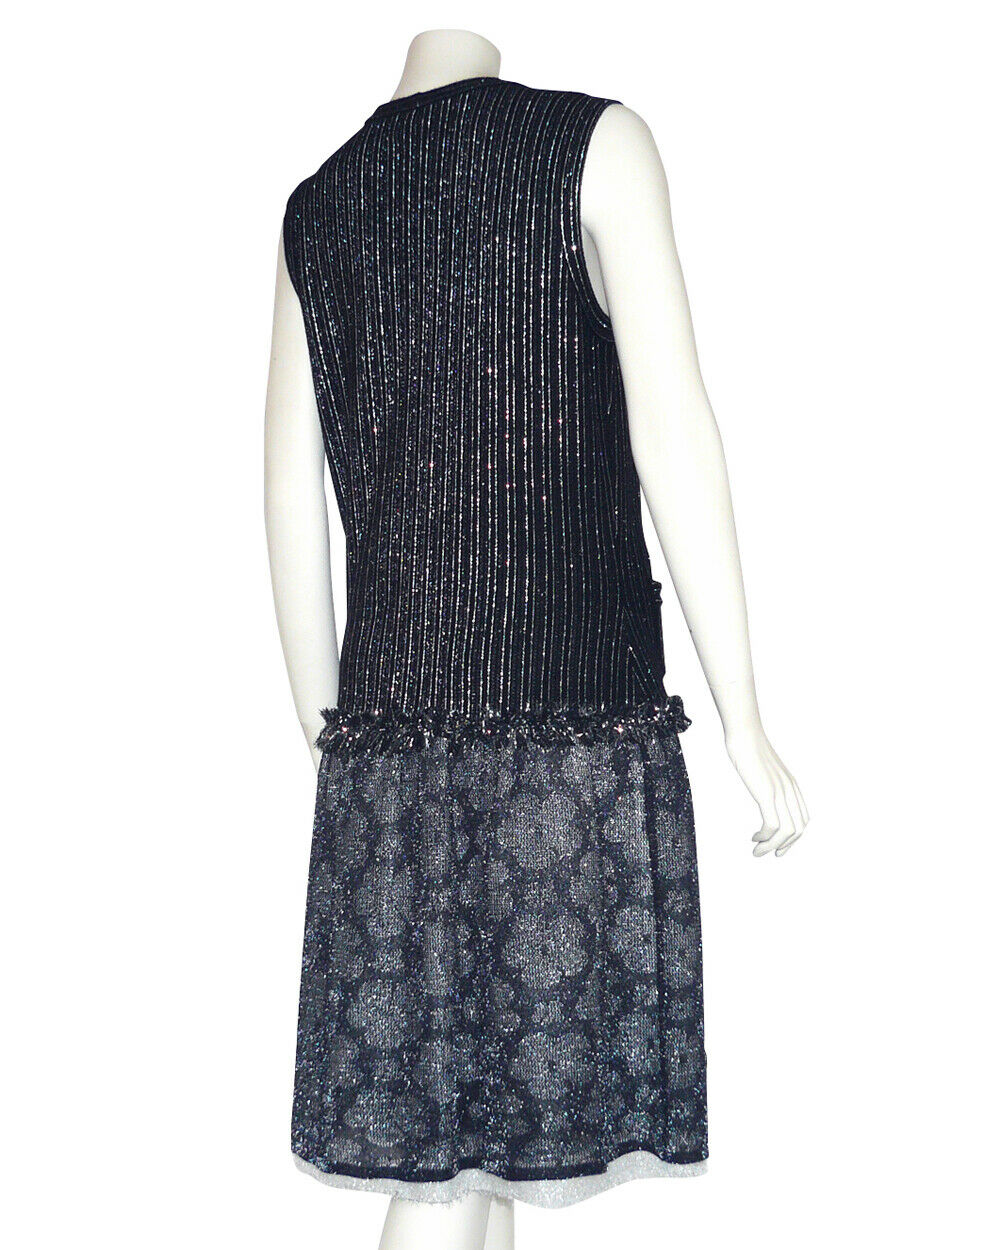 Chanel - robe + etole en cachemire noir et camelias  - chanel cashmere dress